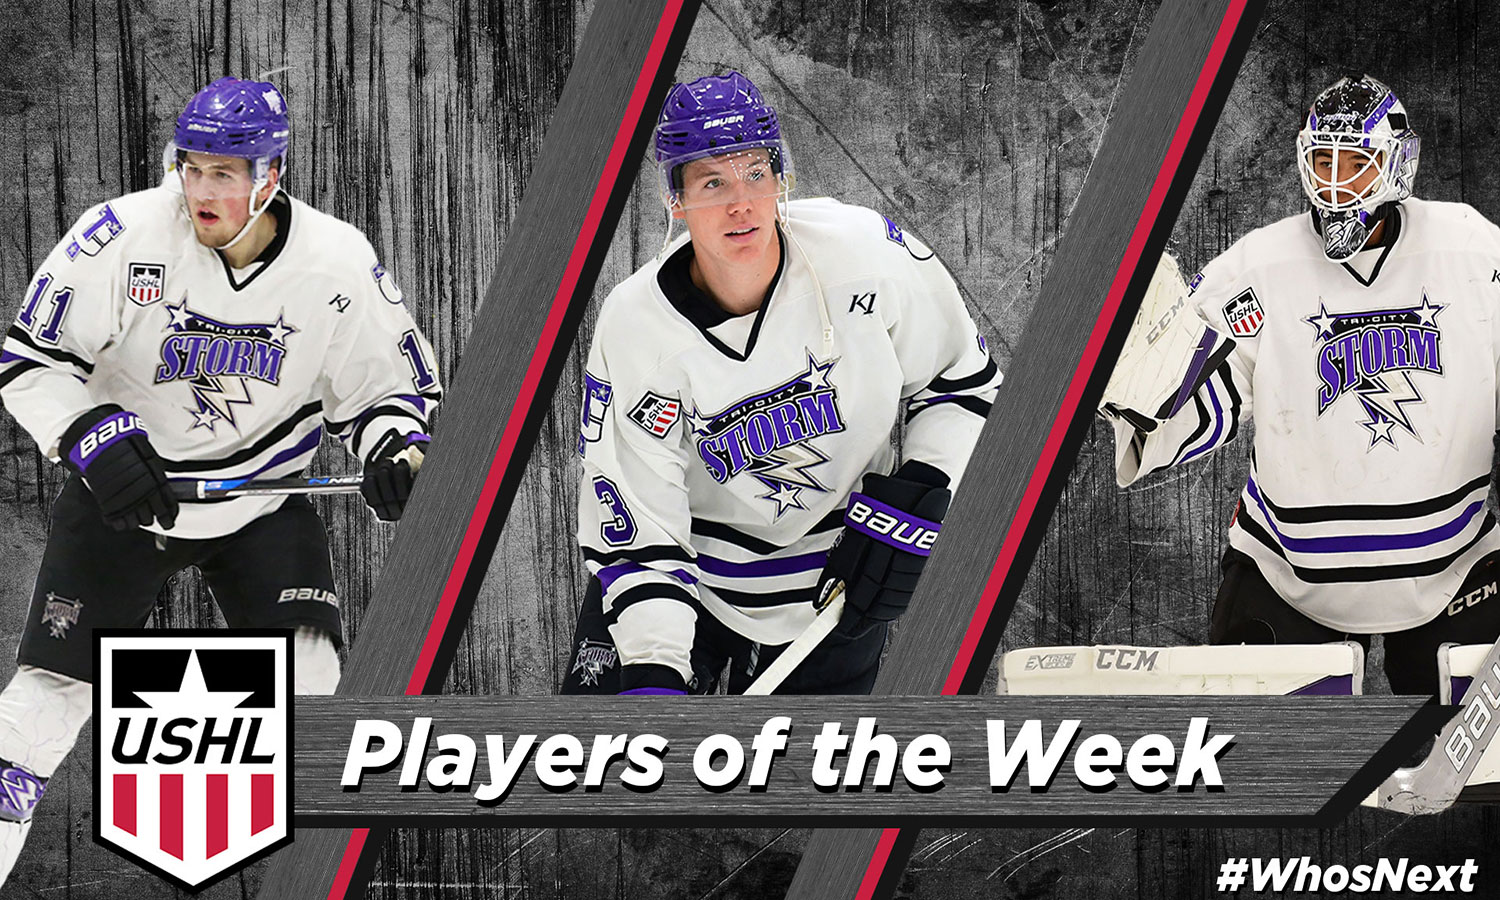 USHL: Players Of The Week - Week 16. 2018-19